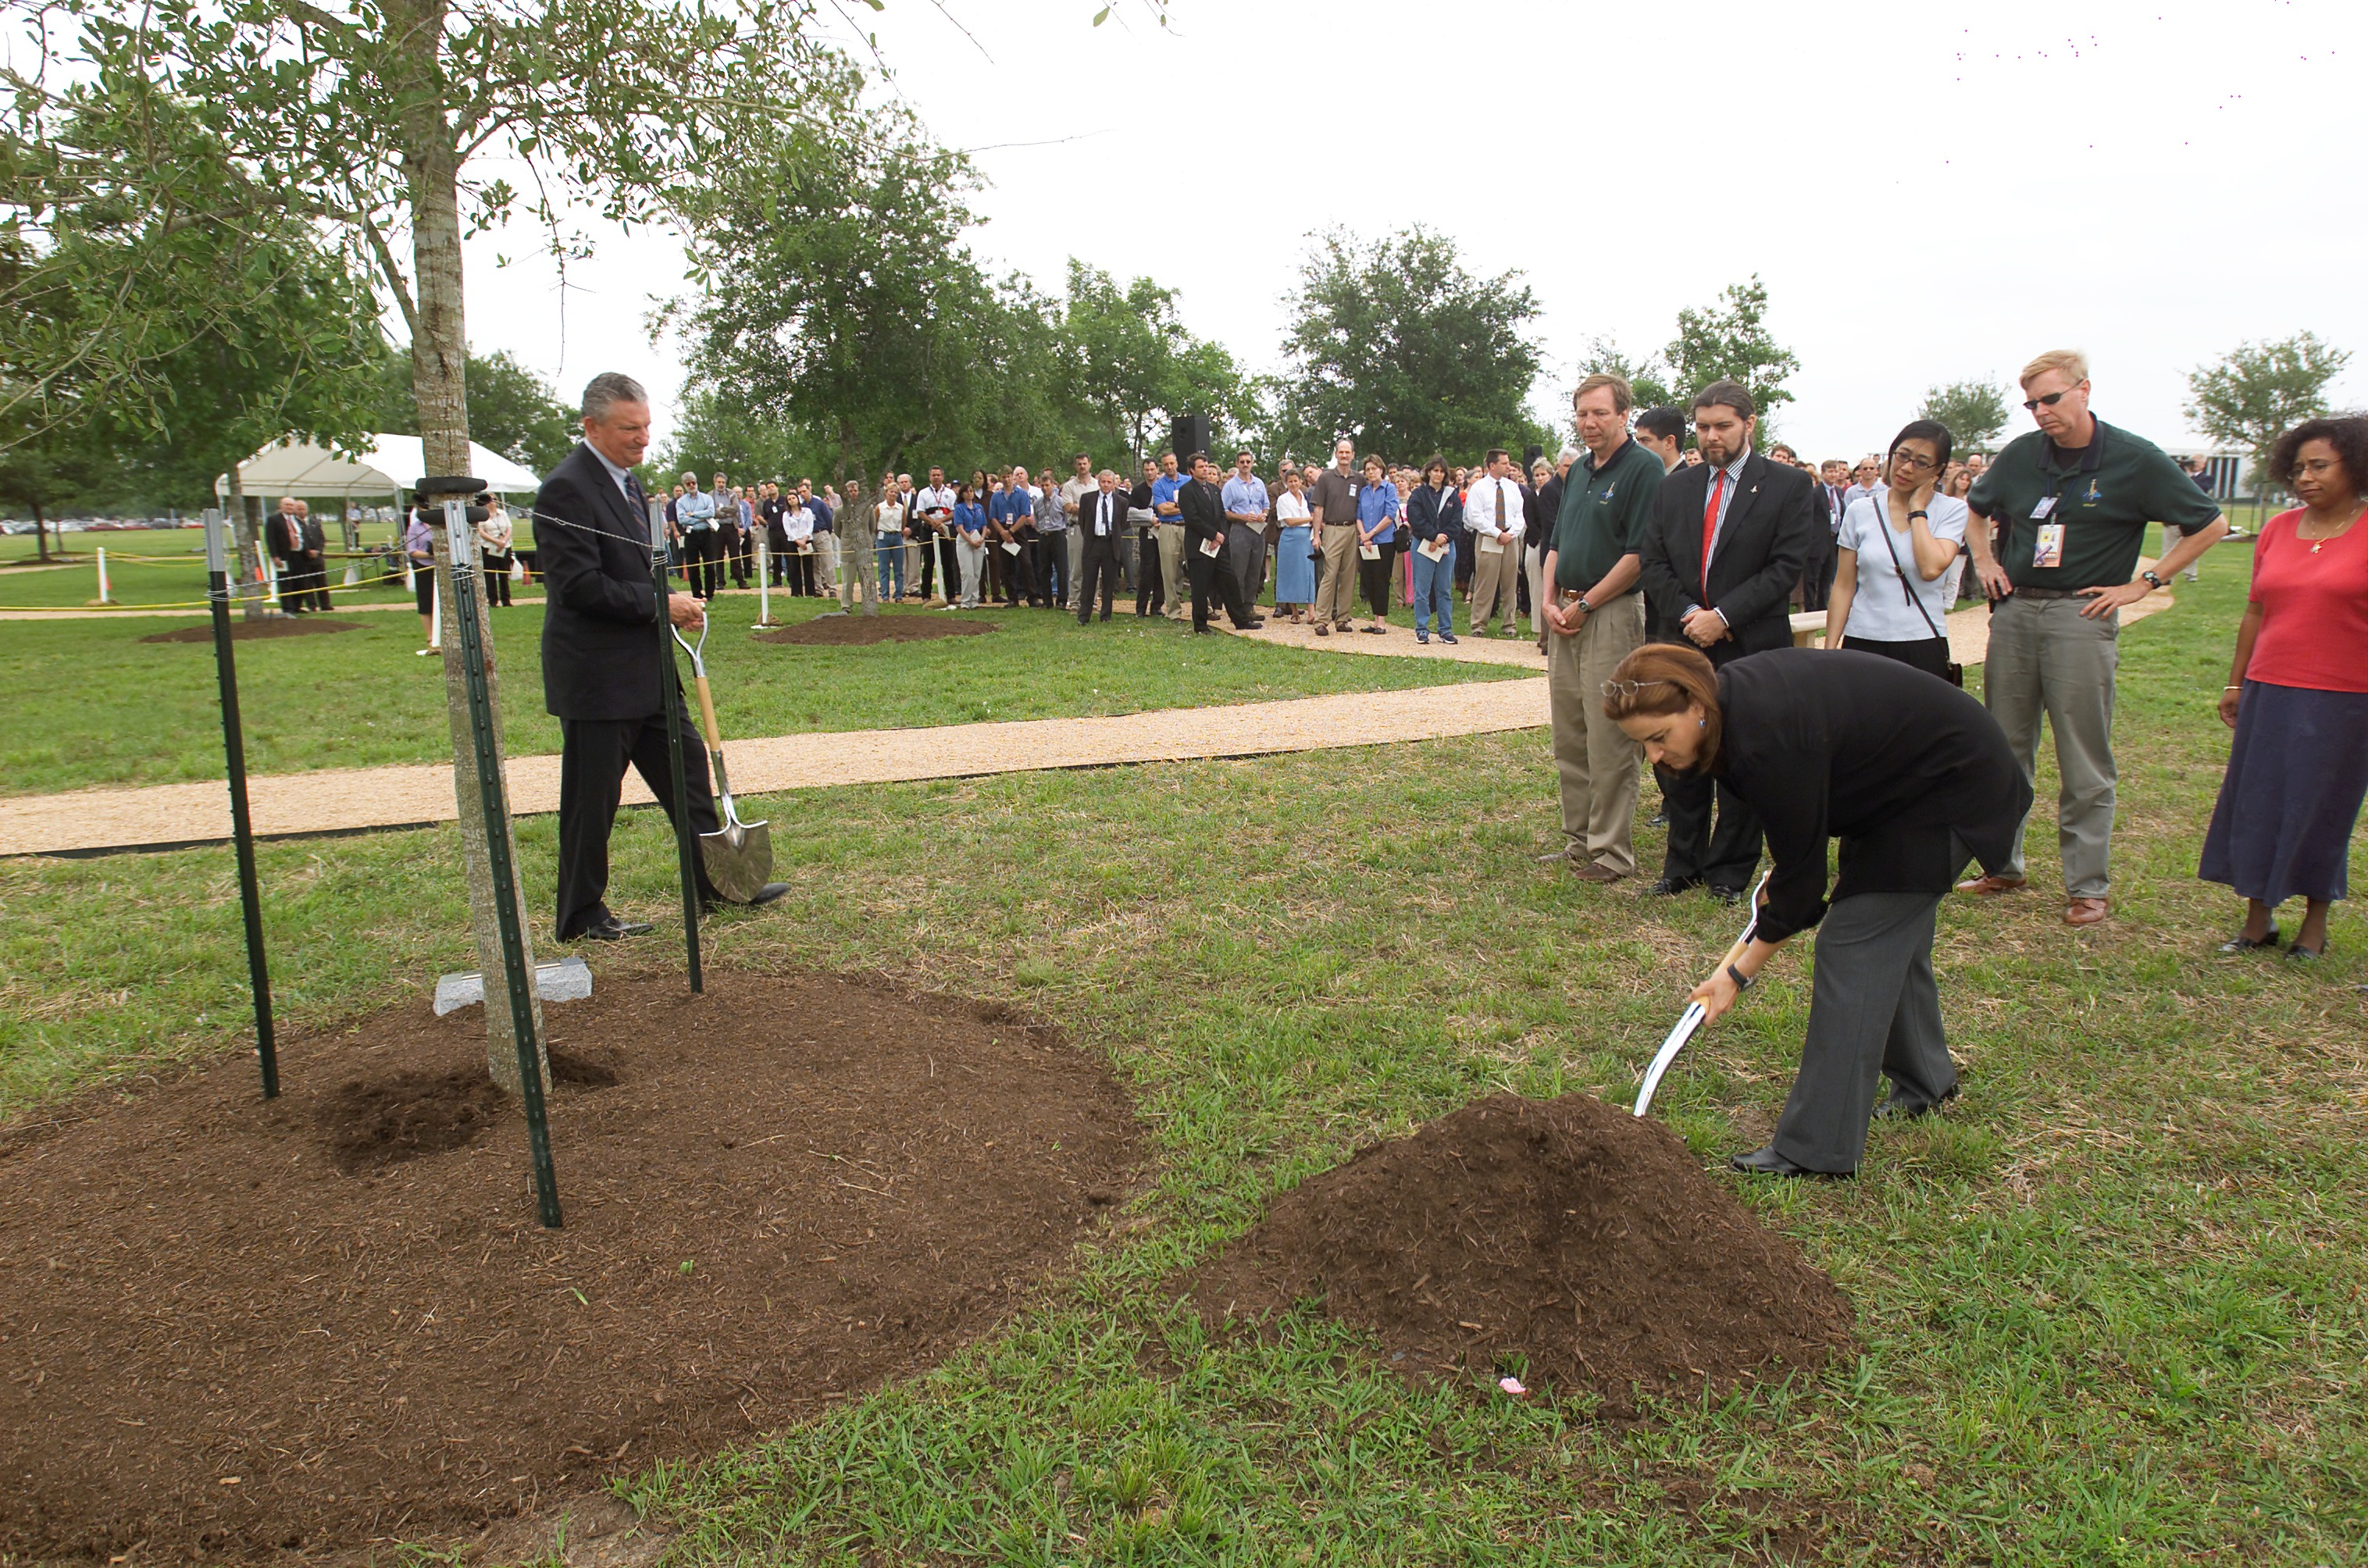 Astronaut Ilan Ramon's Wife Participates in Tree Planting Ceremony for Columbia Shuttle Memorial